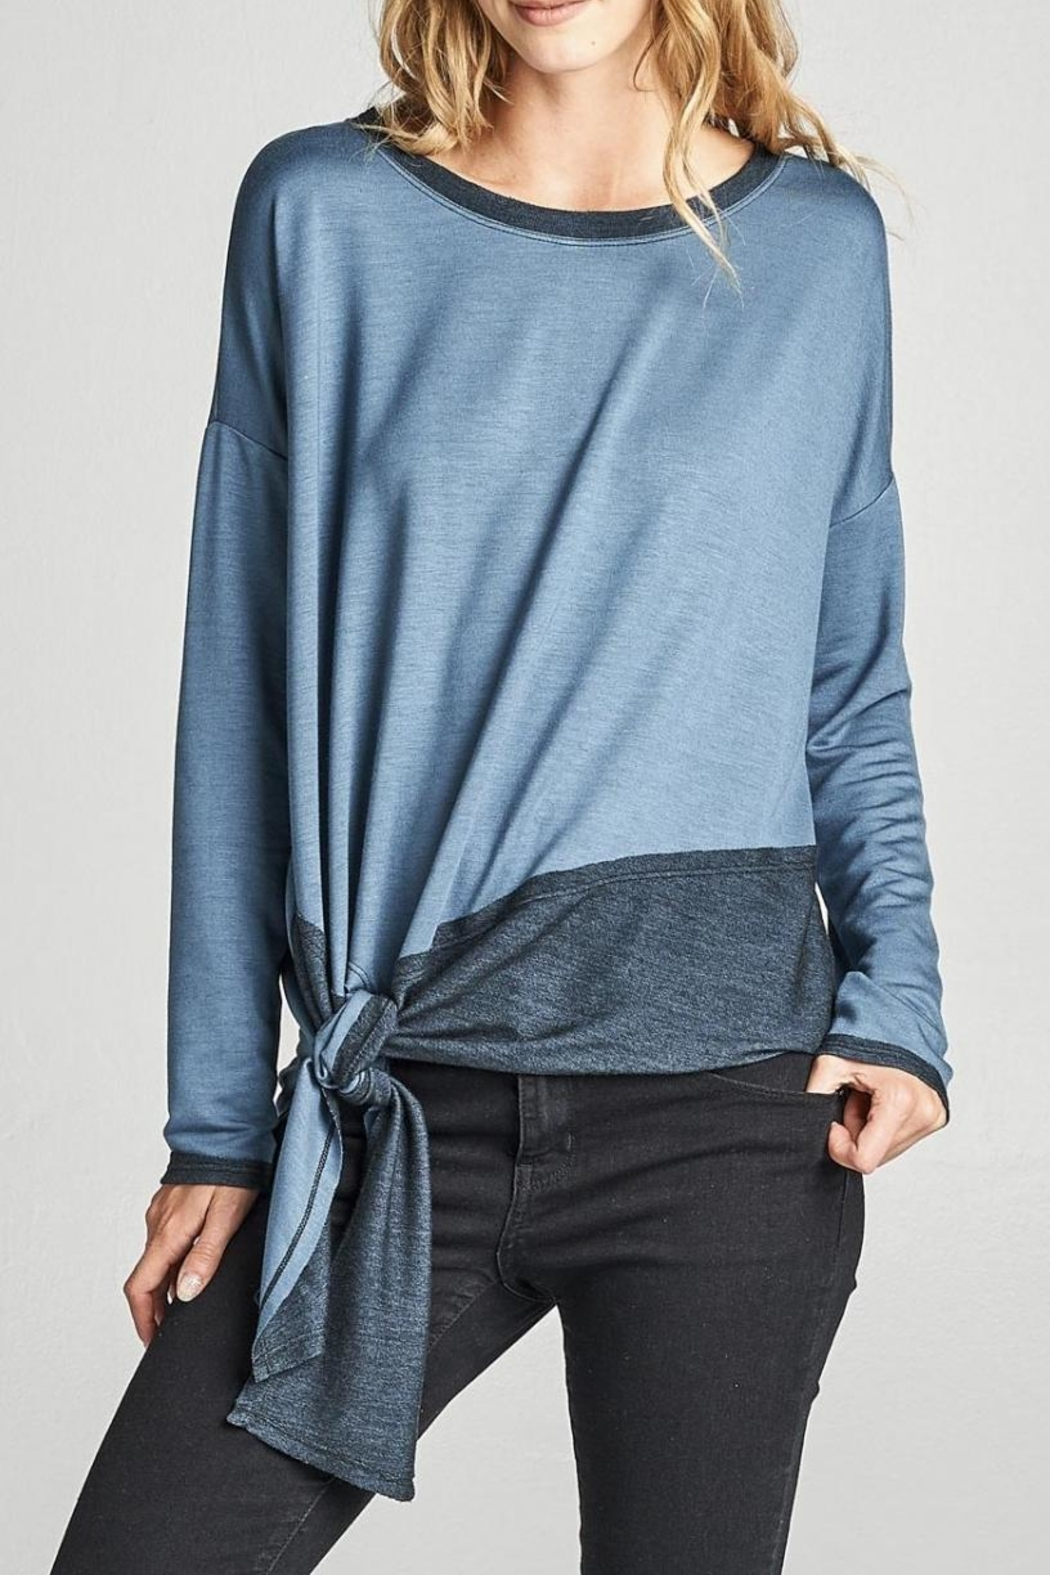 Cotton Bleu Color Block Top - Main Image